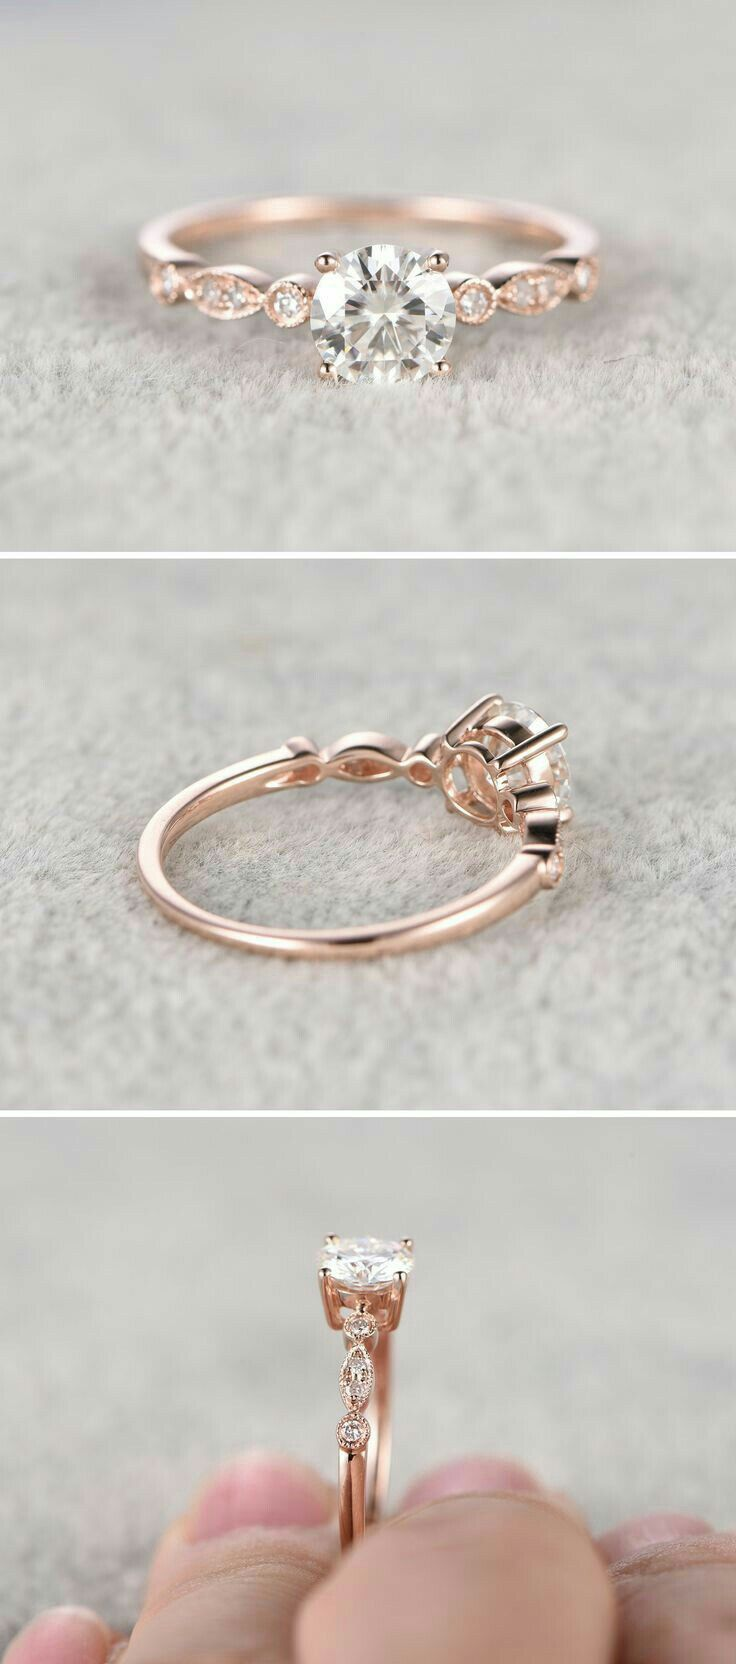 Brilliant 50+ Best Ideas About Amazing Promise Rings https://fashiotopia.com/2017/06/22/50-best-ideas-amazing-promise-rings/ You can even produce some gag gifts which are going to be funny and humorous. A gift does not have to be expensive. Picking a present for mum for Mother's Day may be struggle.